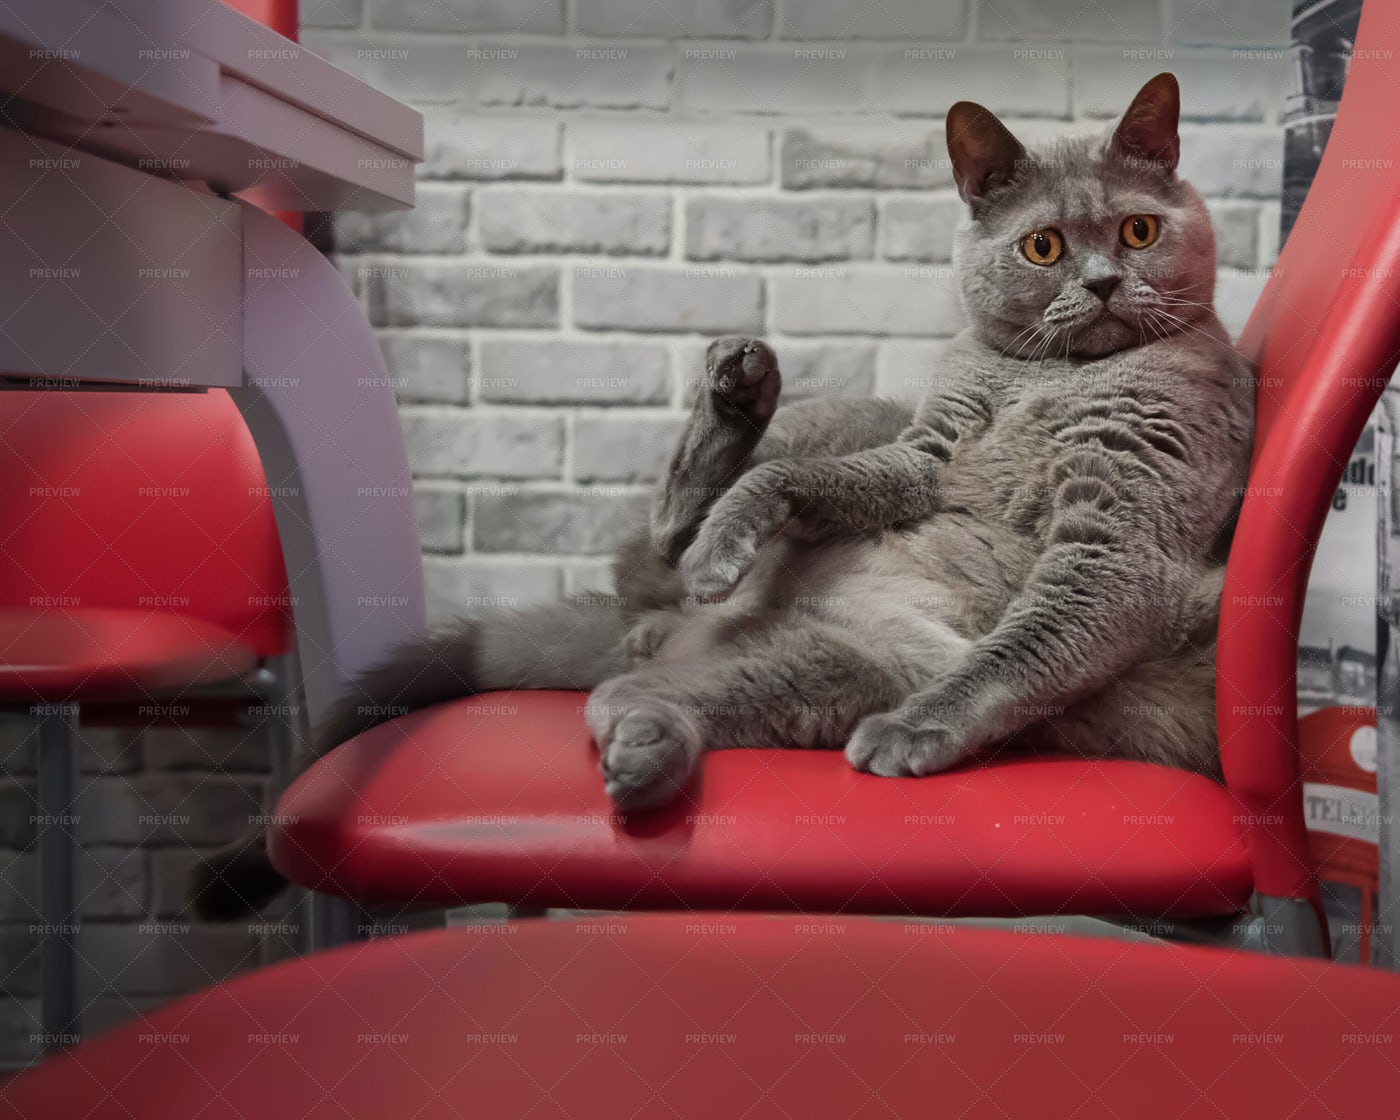 Cat Sitting On Chair: Stock Photos